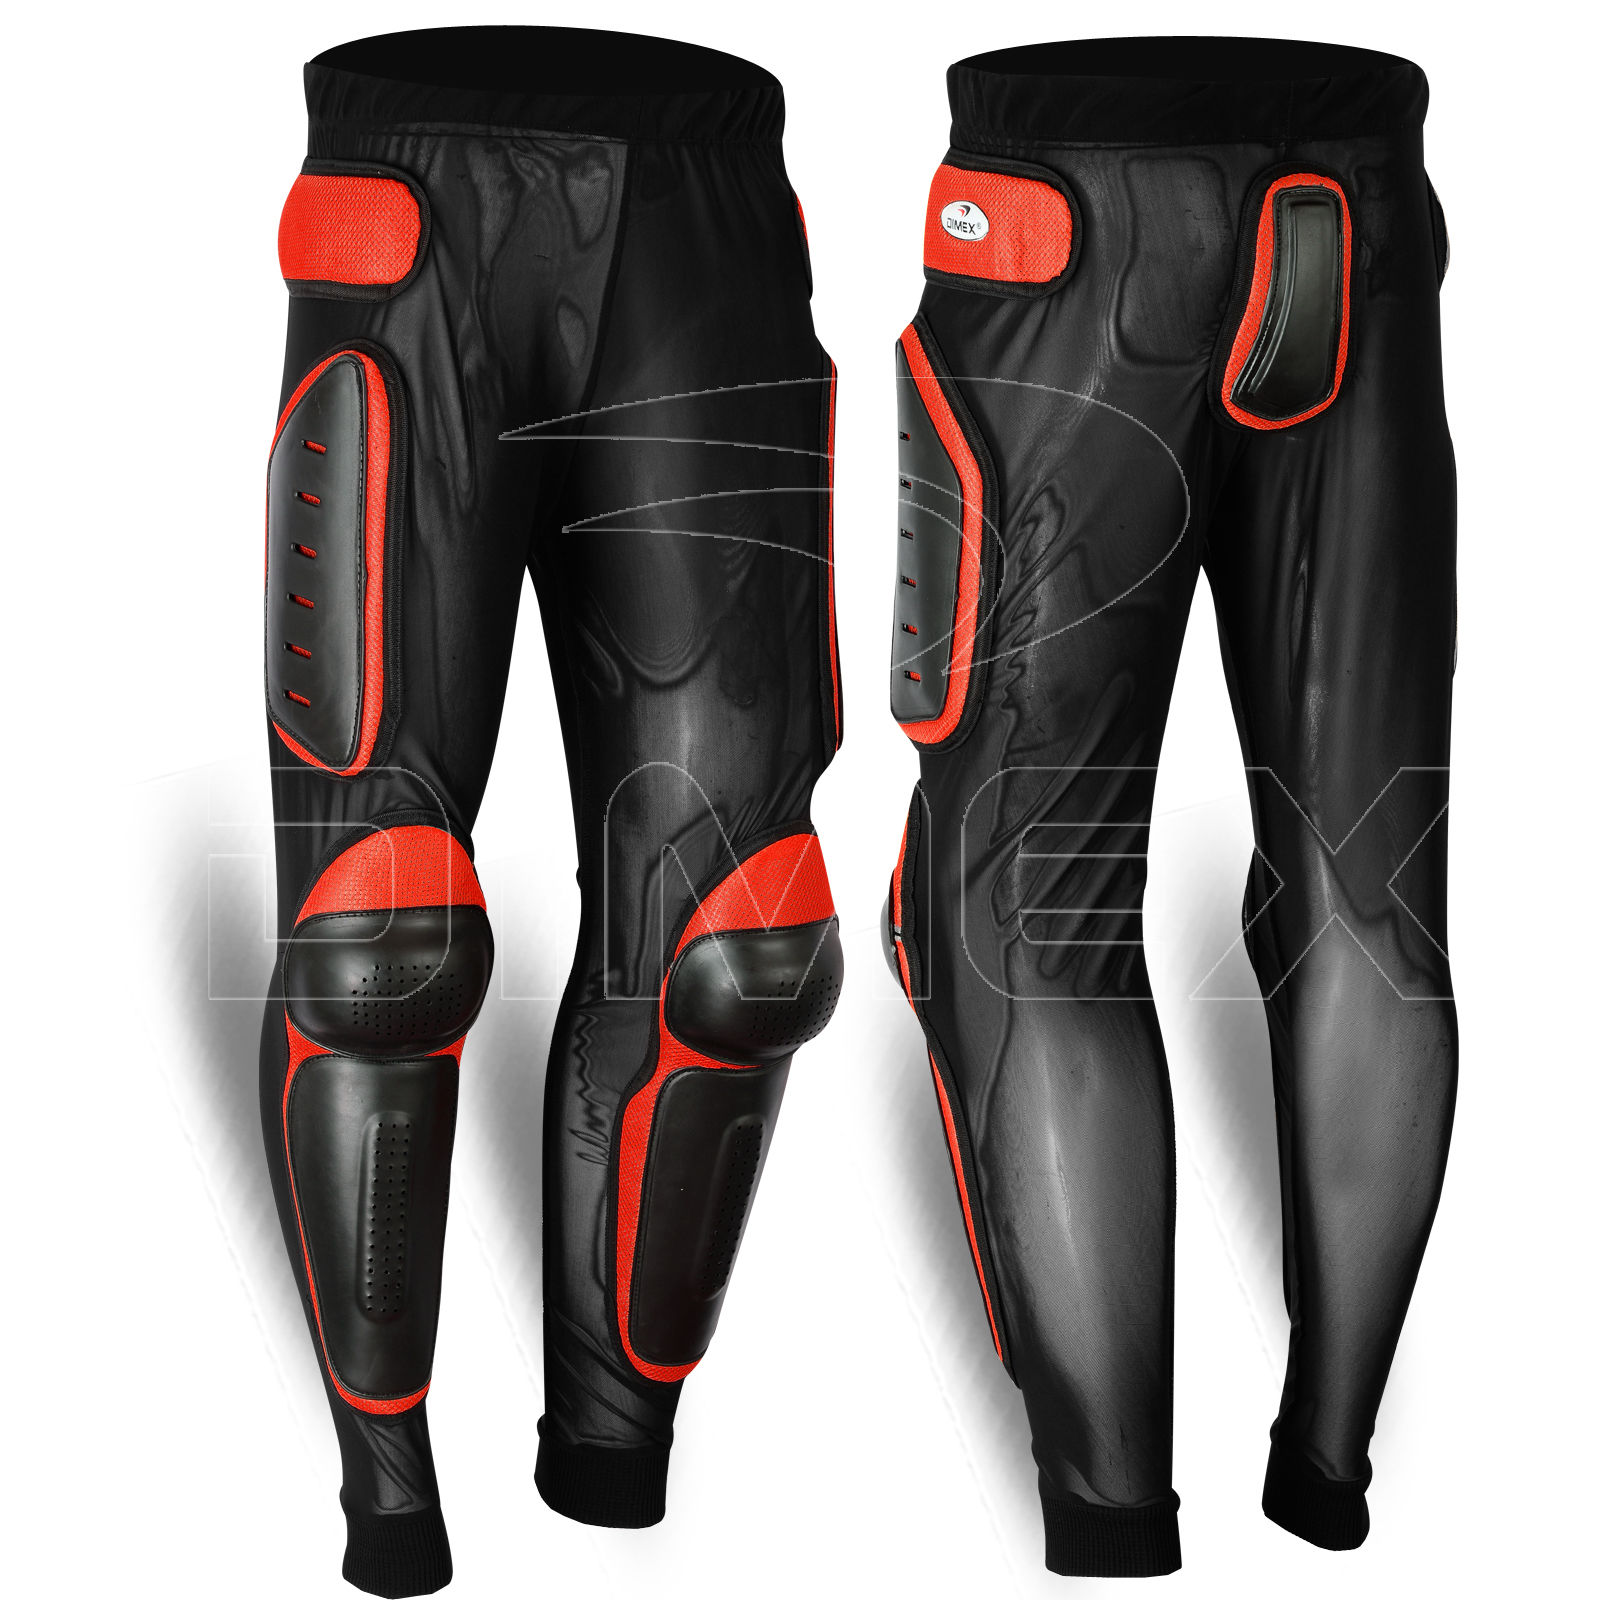 Best Motorcycle Jacket >> Body Armour Motorcycle Motorbike Trouser Snowbaords Skating Pants MX Protection | eBay